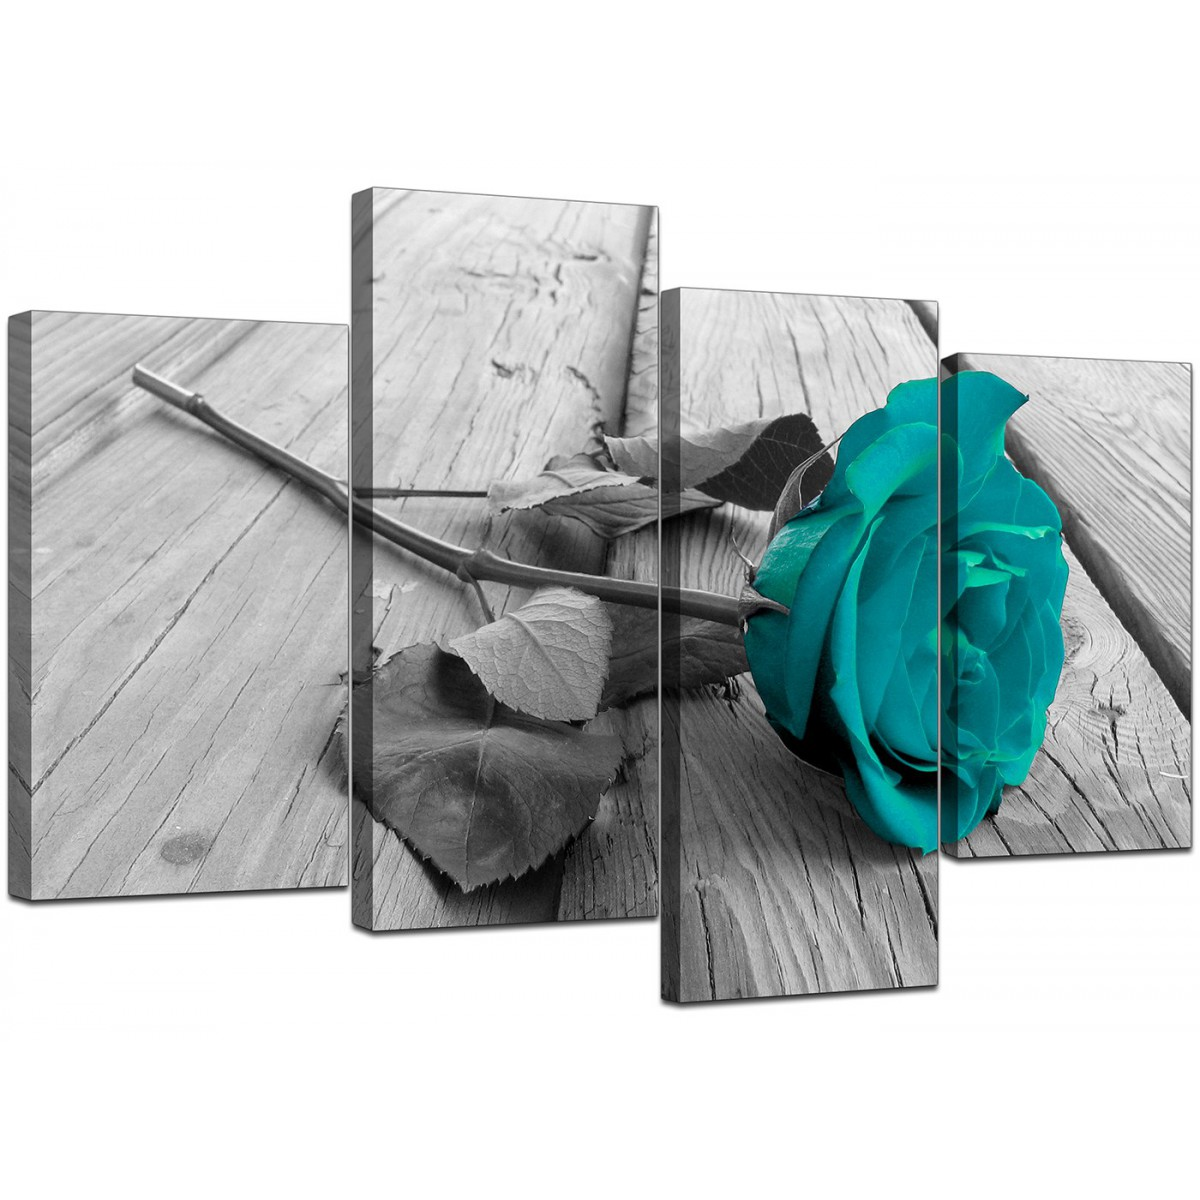 Canvas Prints UK Of Teal Rose In Black Amp White For Your